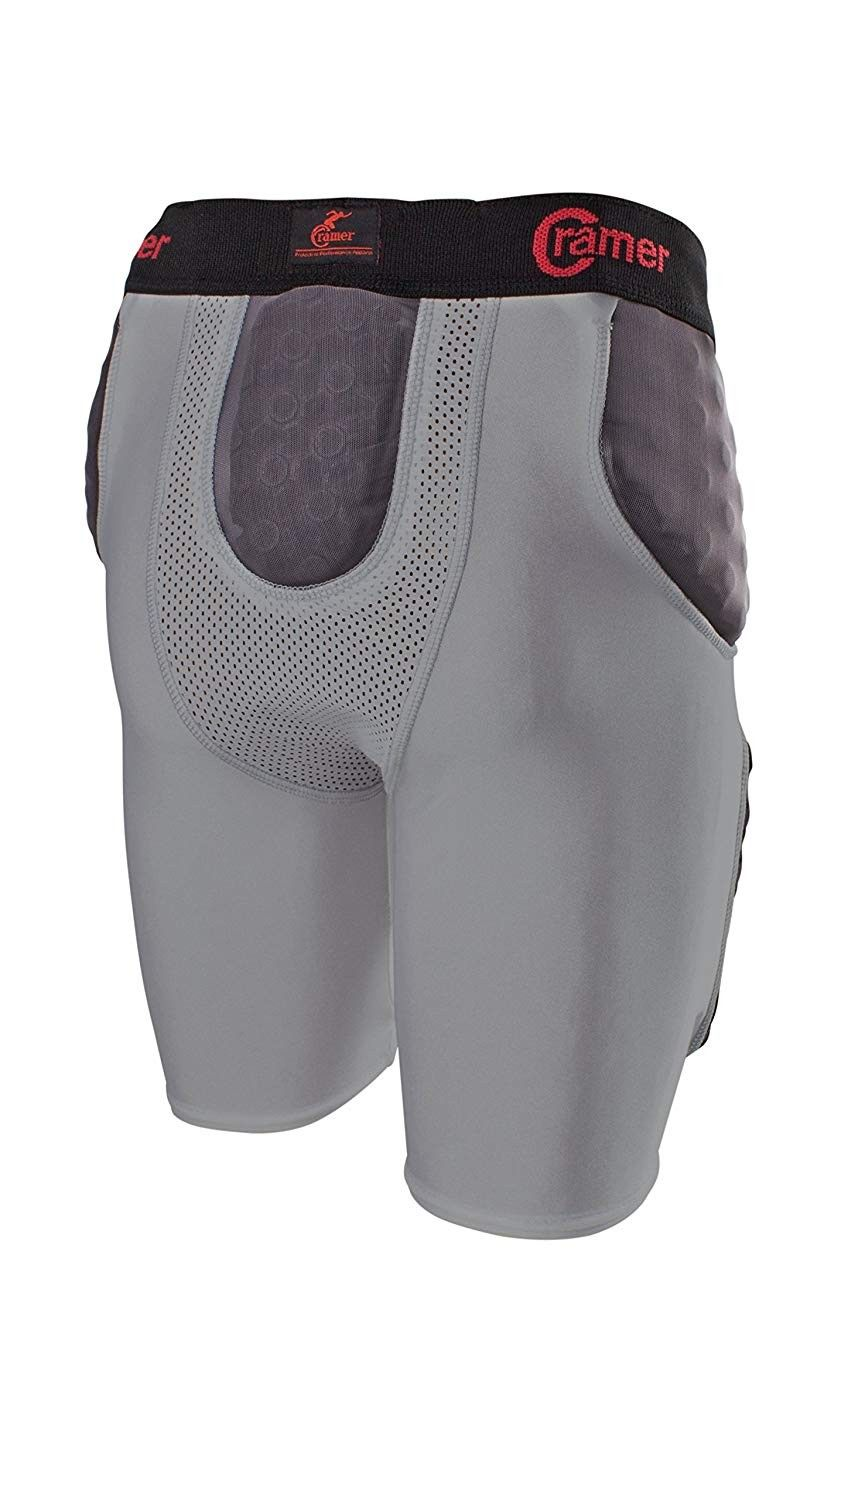 Lightning 5 pad football girdle with integrated hip tail